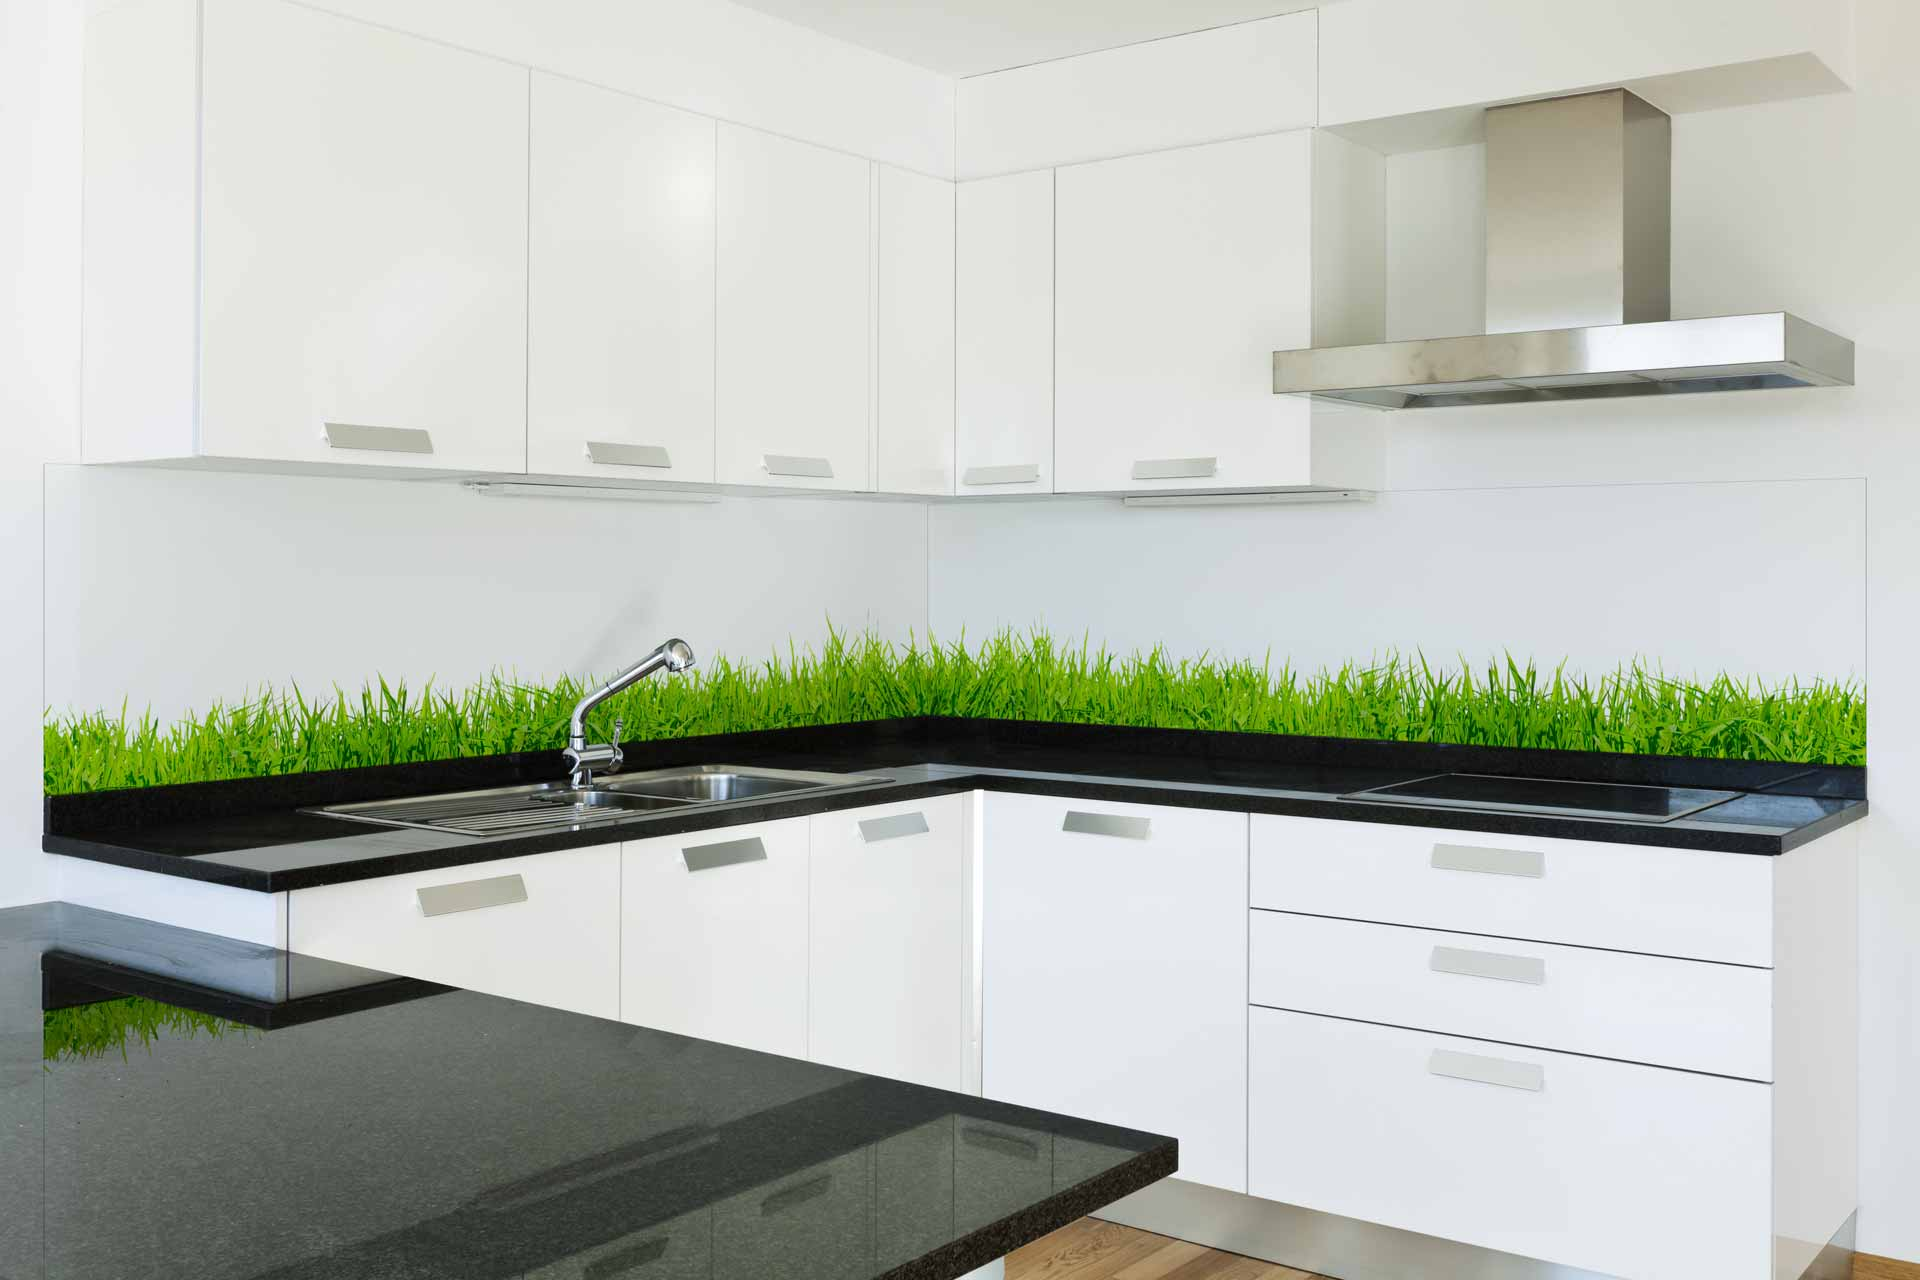 Green Grass kitchen splasback